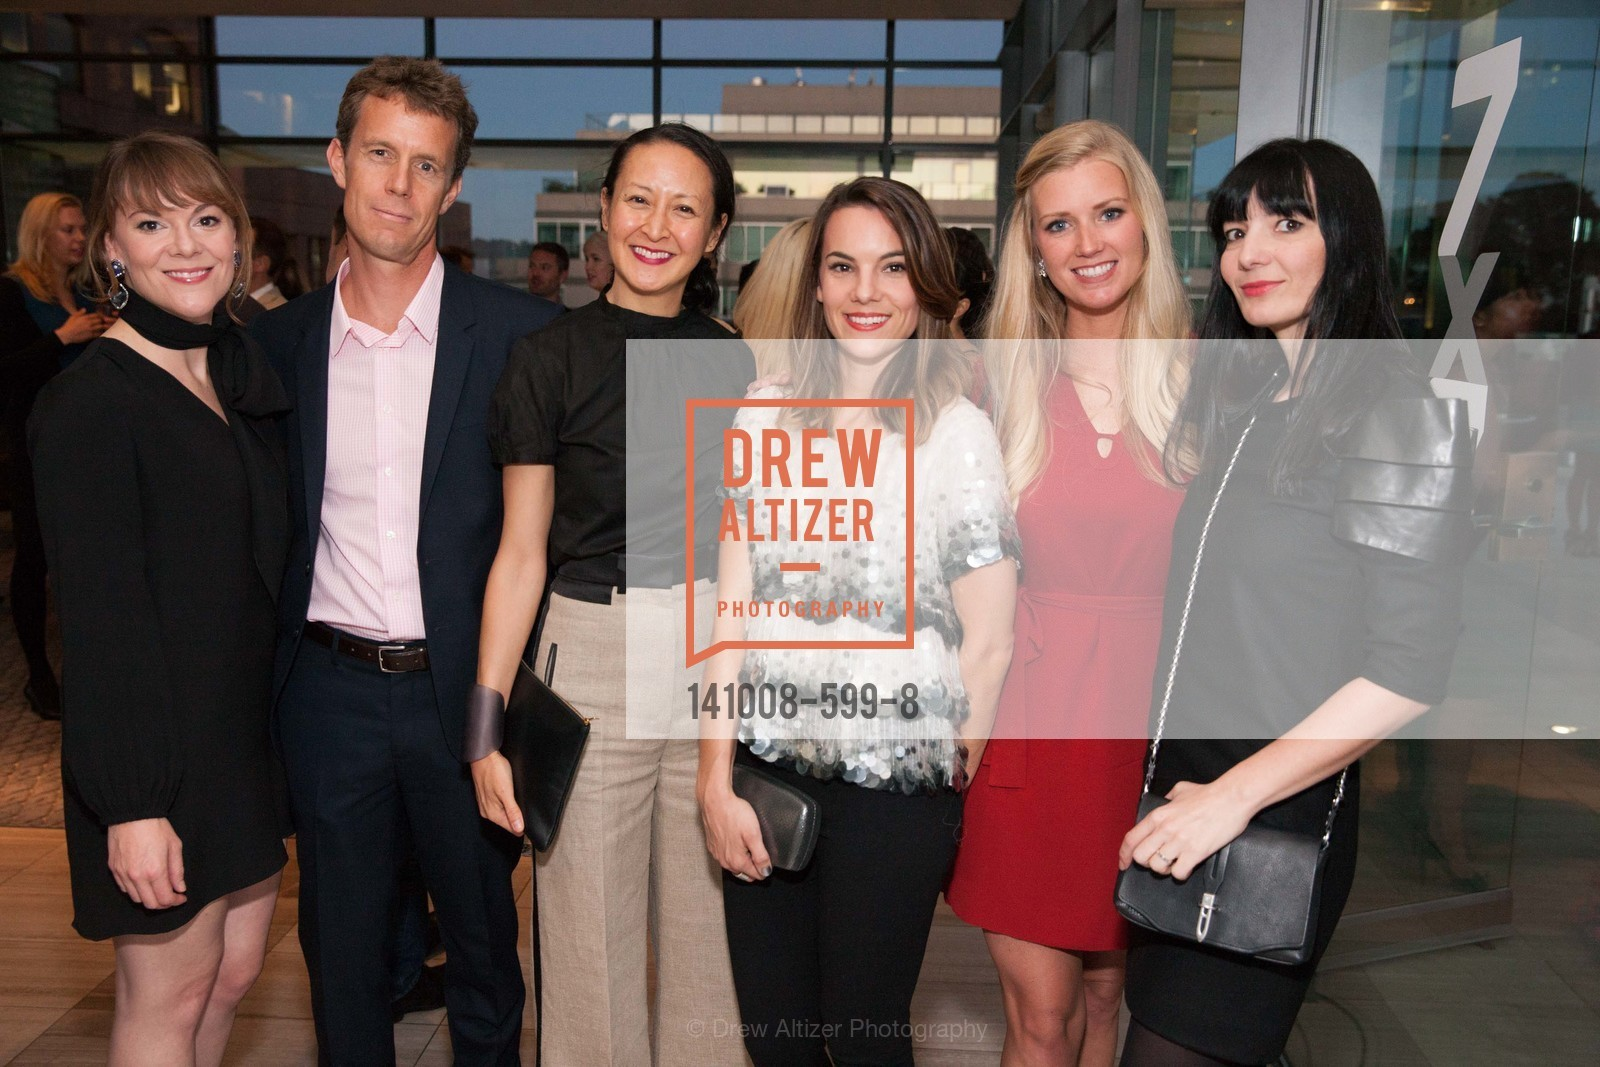 Chloe Hennen, Jothen Frey, Tina Frey, Natalie Wages, Ann Bedwell, Camelia Zkikos, 7x7 HOT 20, US, October 8th, 2014,Drew Altizer, Drew Altizer Photography, full-service agency, private events, San Francisco photographer, photographer california